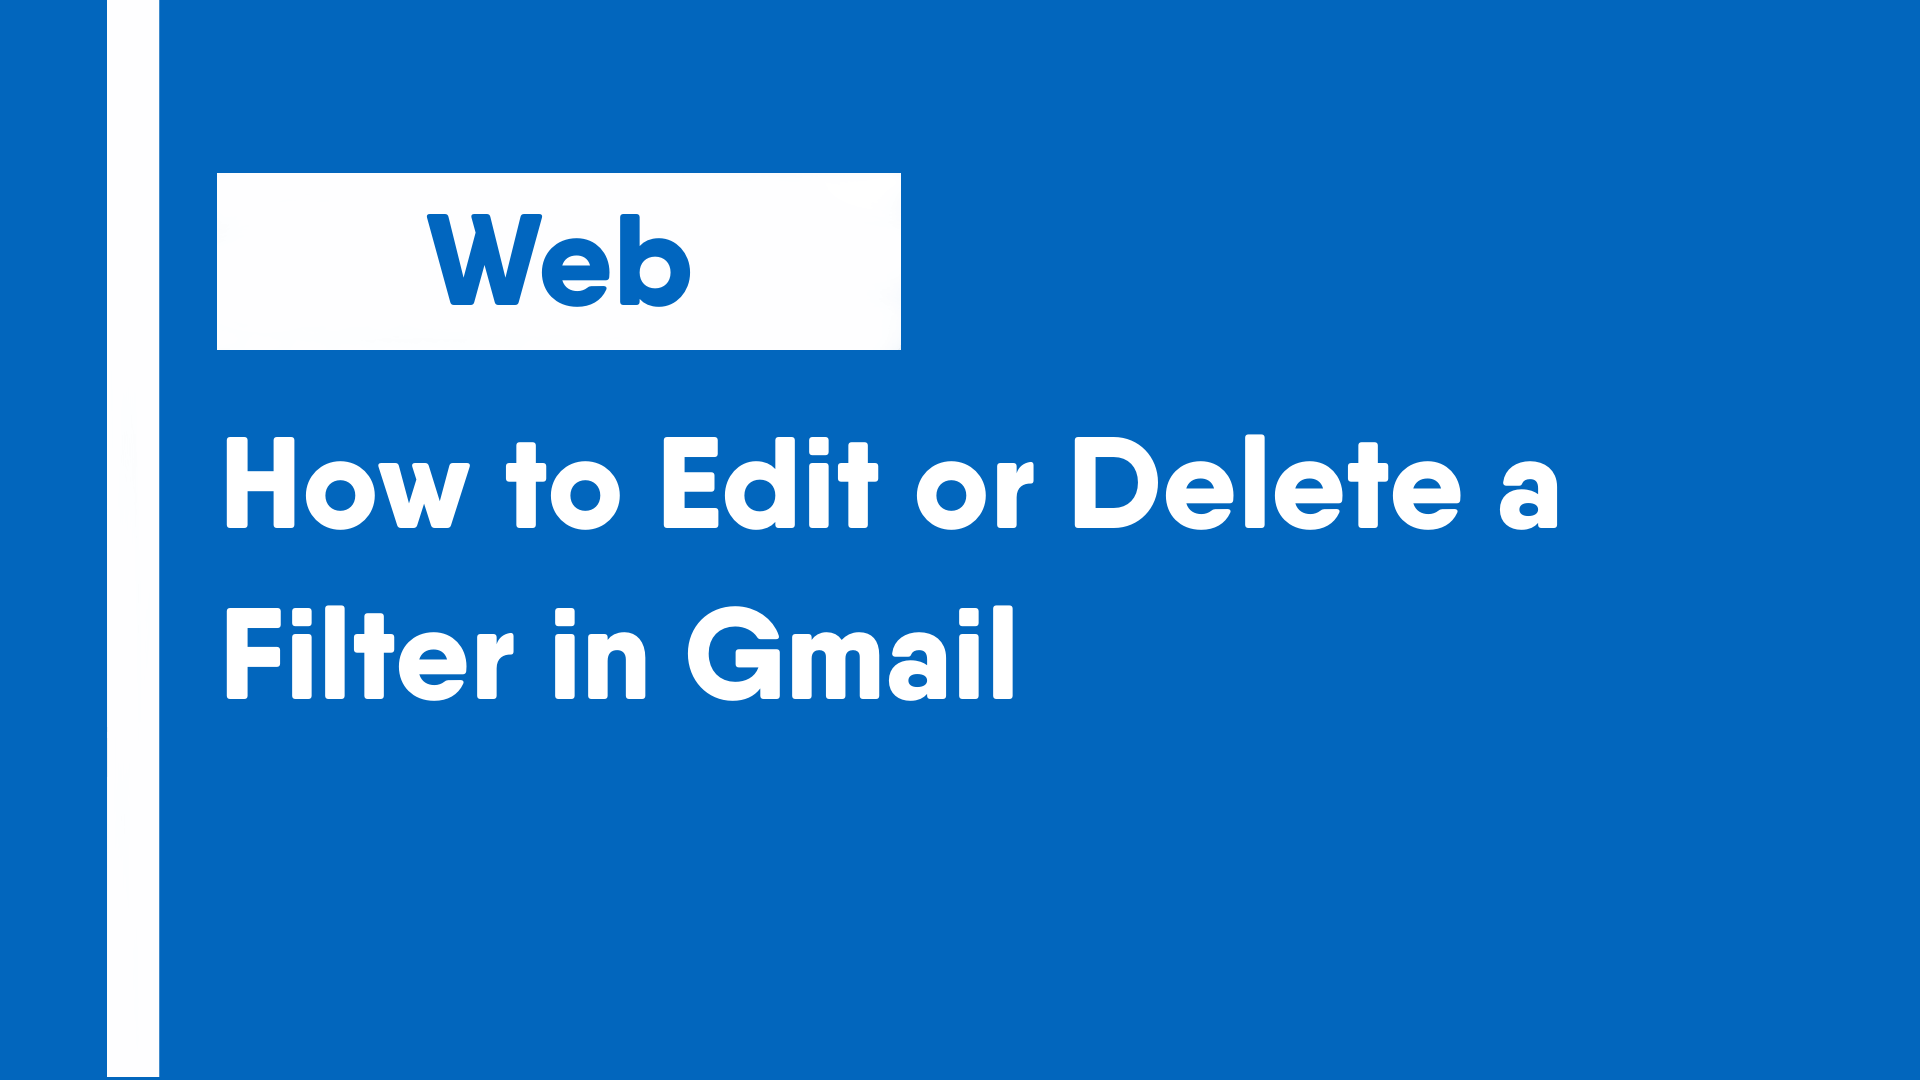 How to Edit or Delete a Filter in Gmail